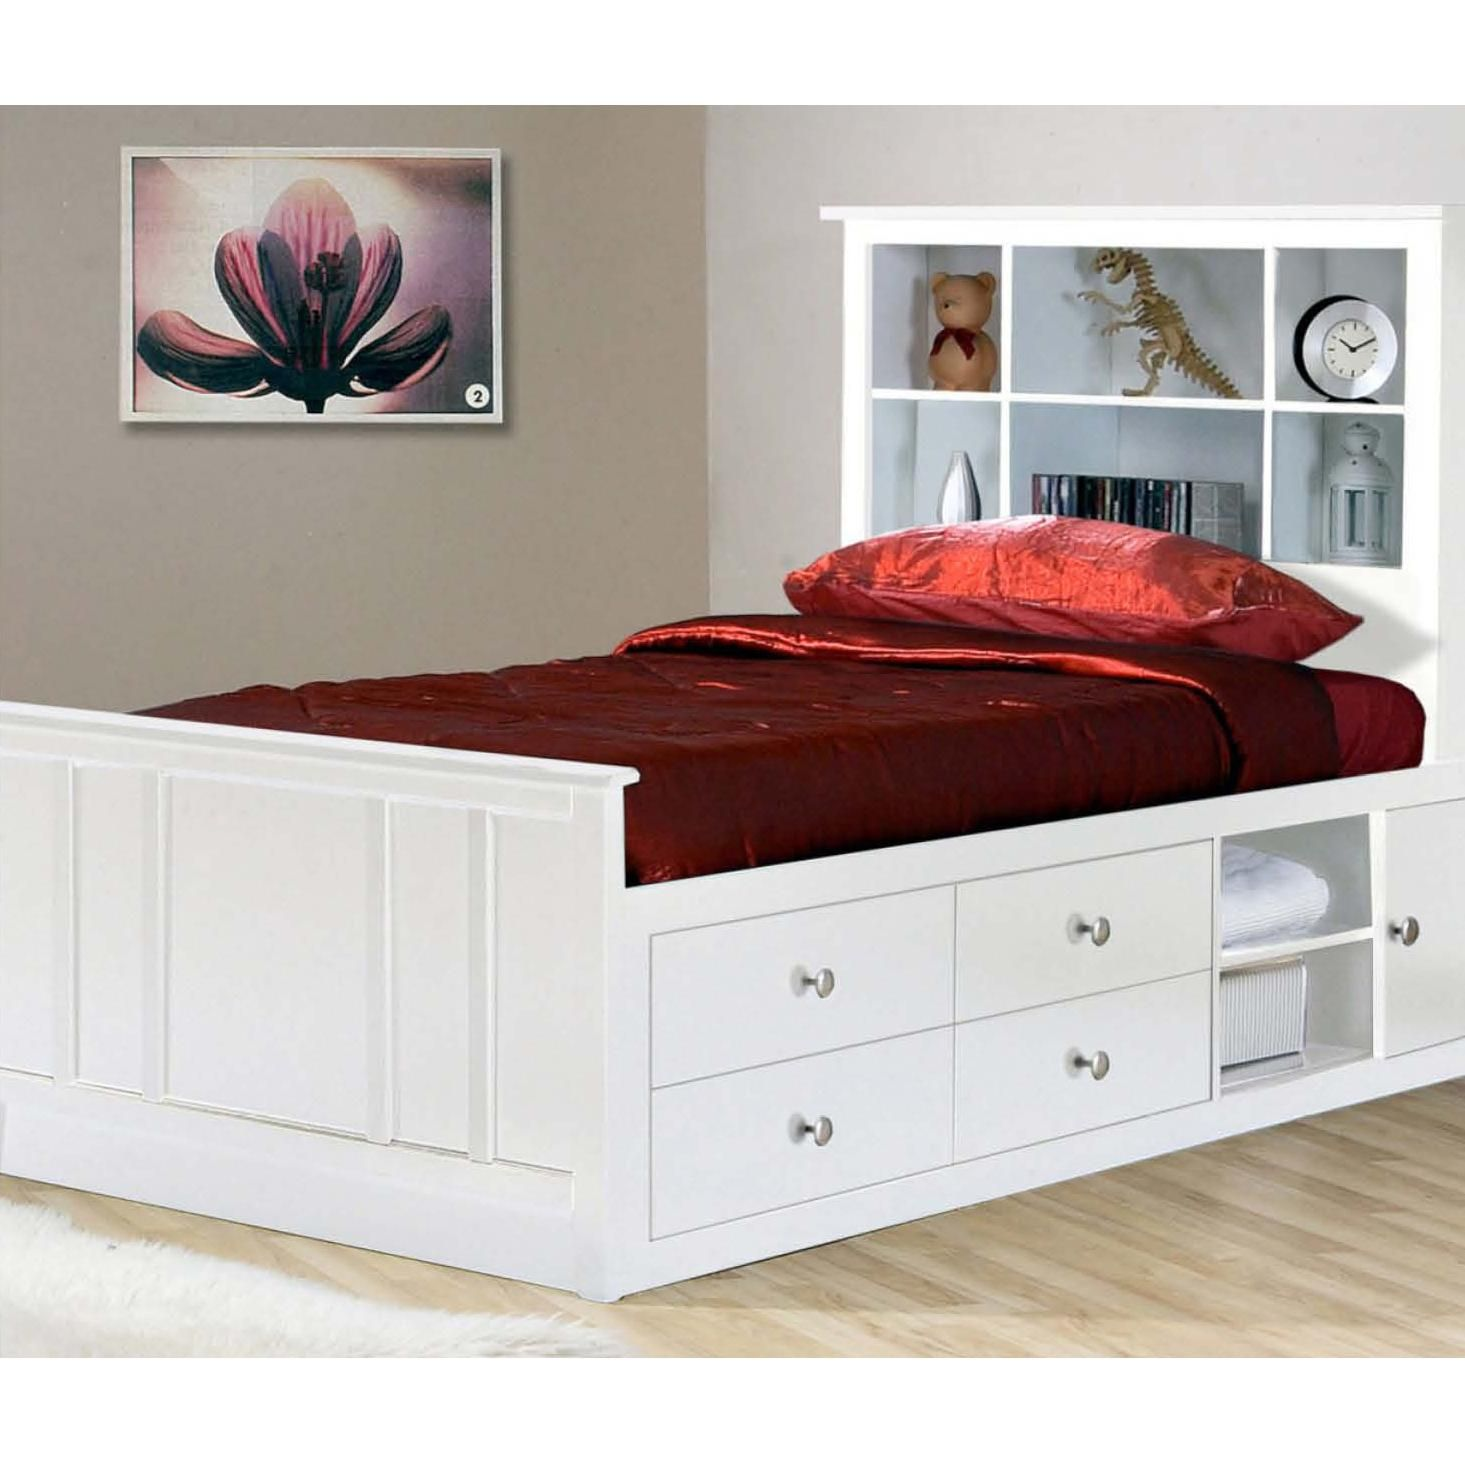 Twin bed with storage and headboard - Millie White Millie White Twin Captain S Bed By Private Reserve